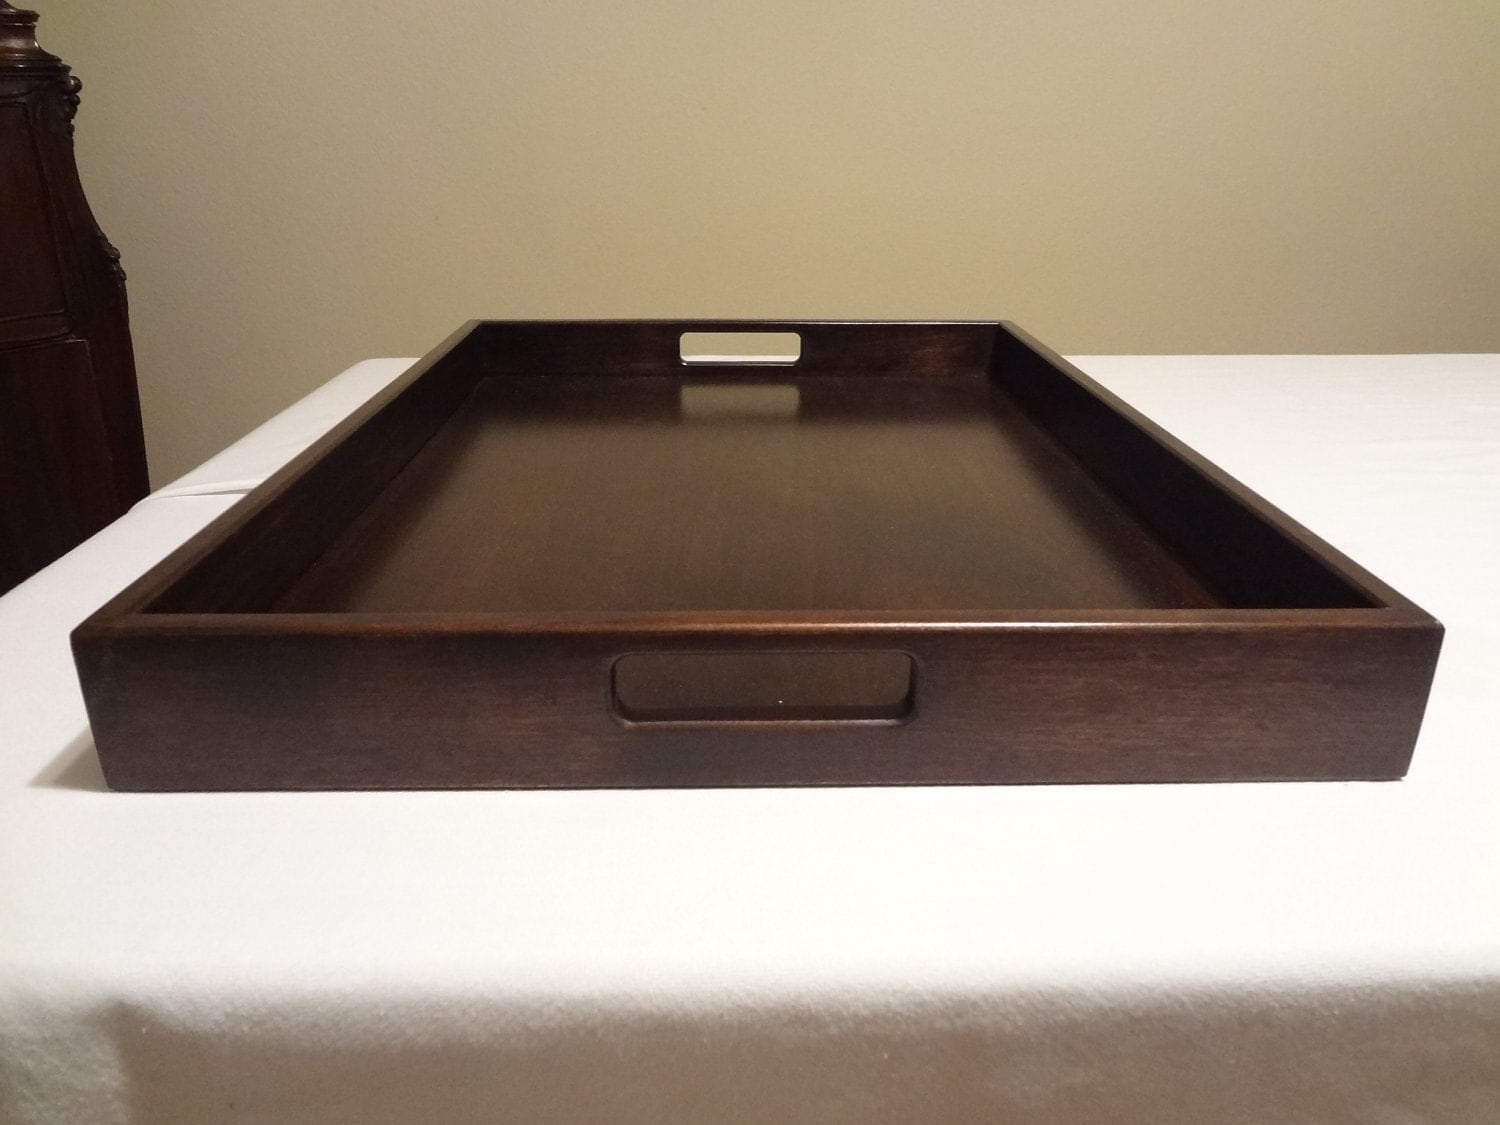 Custom made ottoman or serving tray